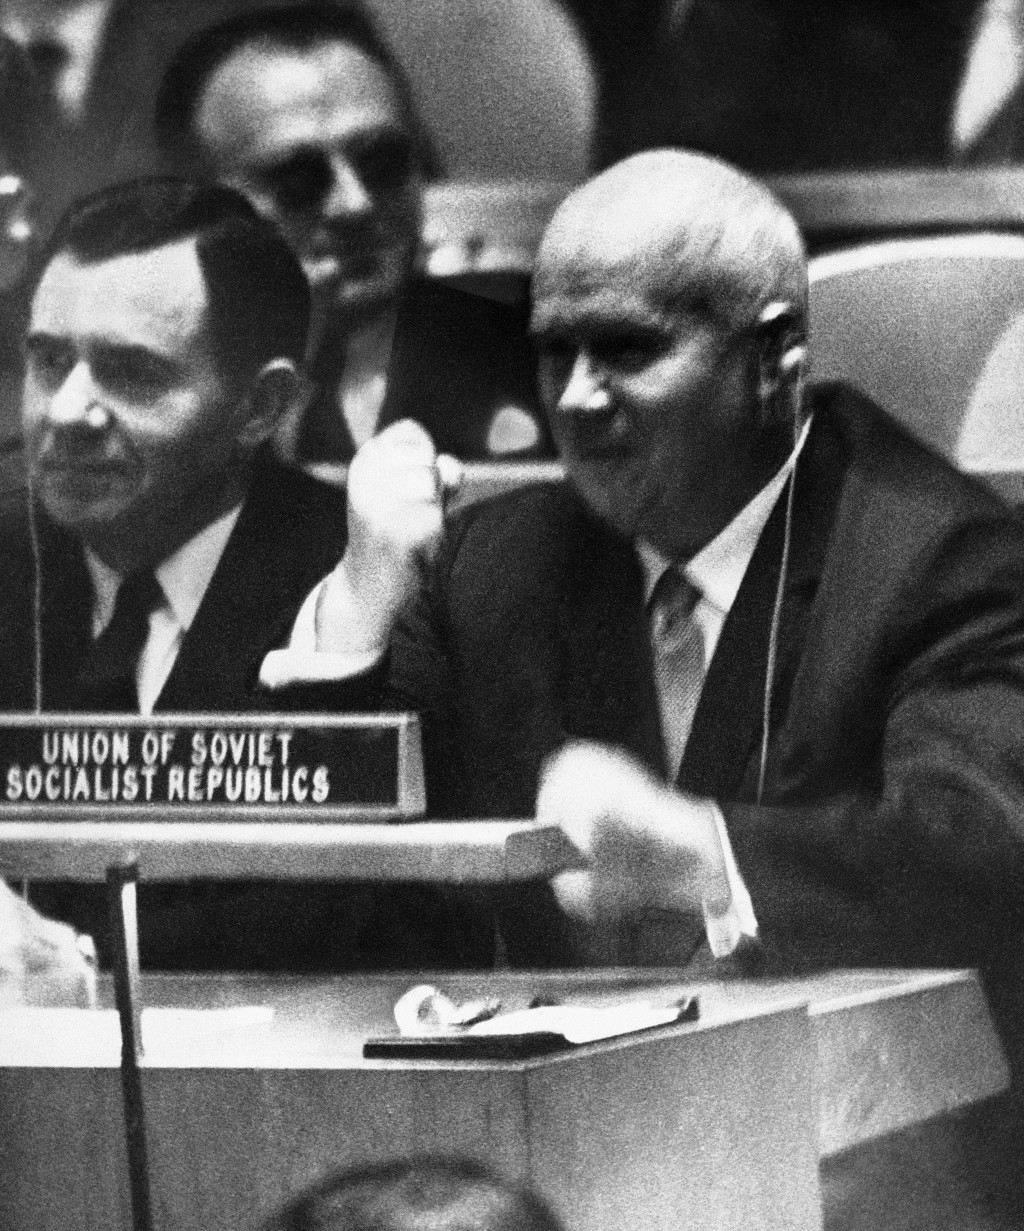 FILE - In this Oct. 12, 1960 file photo, Soviet Premier Nikita Khrushchev pounds his desk at the United Nations with his fist during a General Assembl...